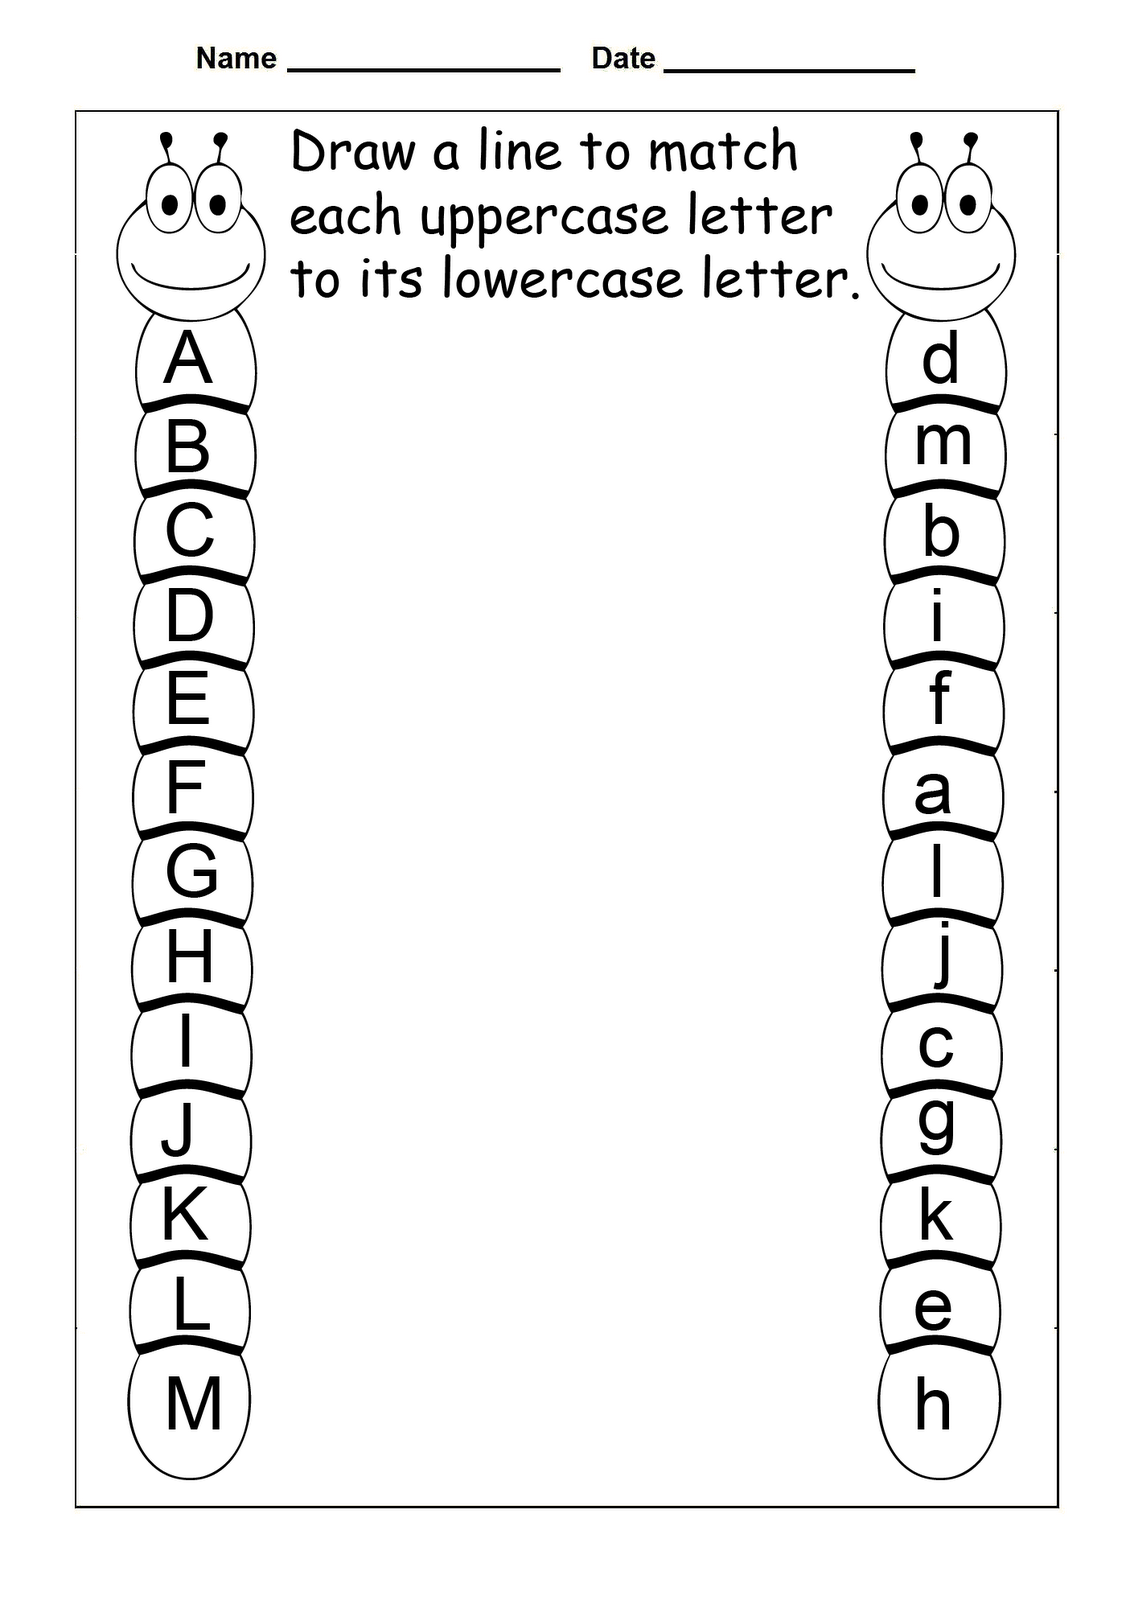 Abc sheets for preschool - Abc Sheets For Preschool 48